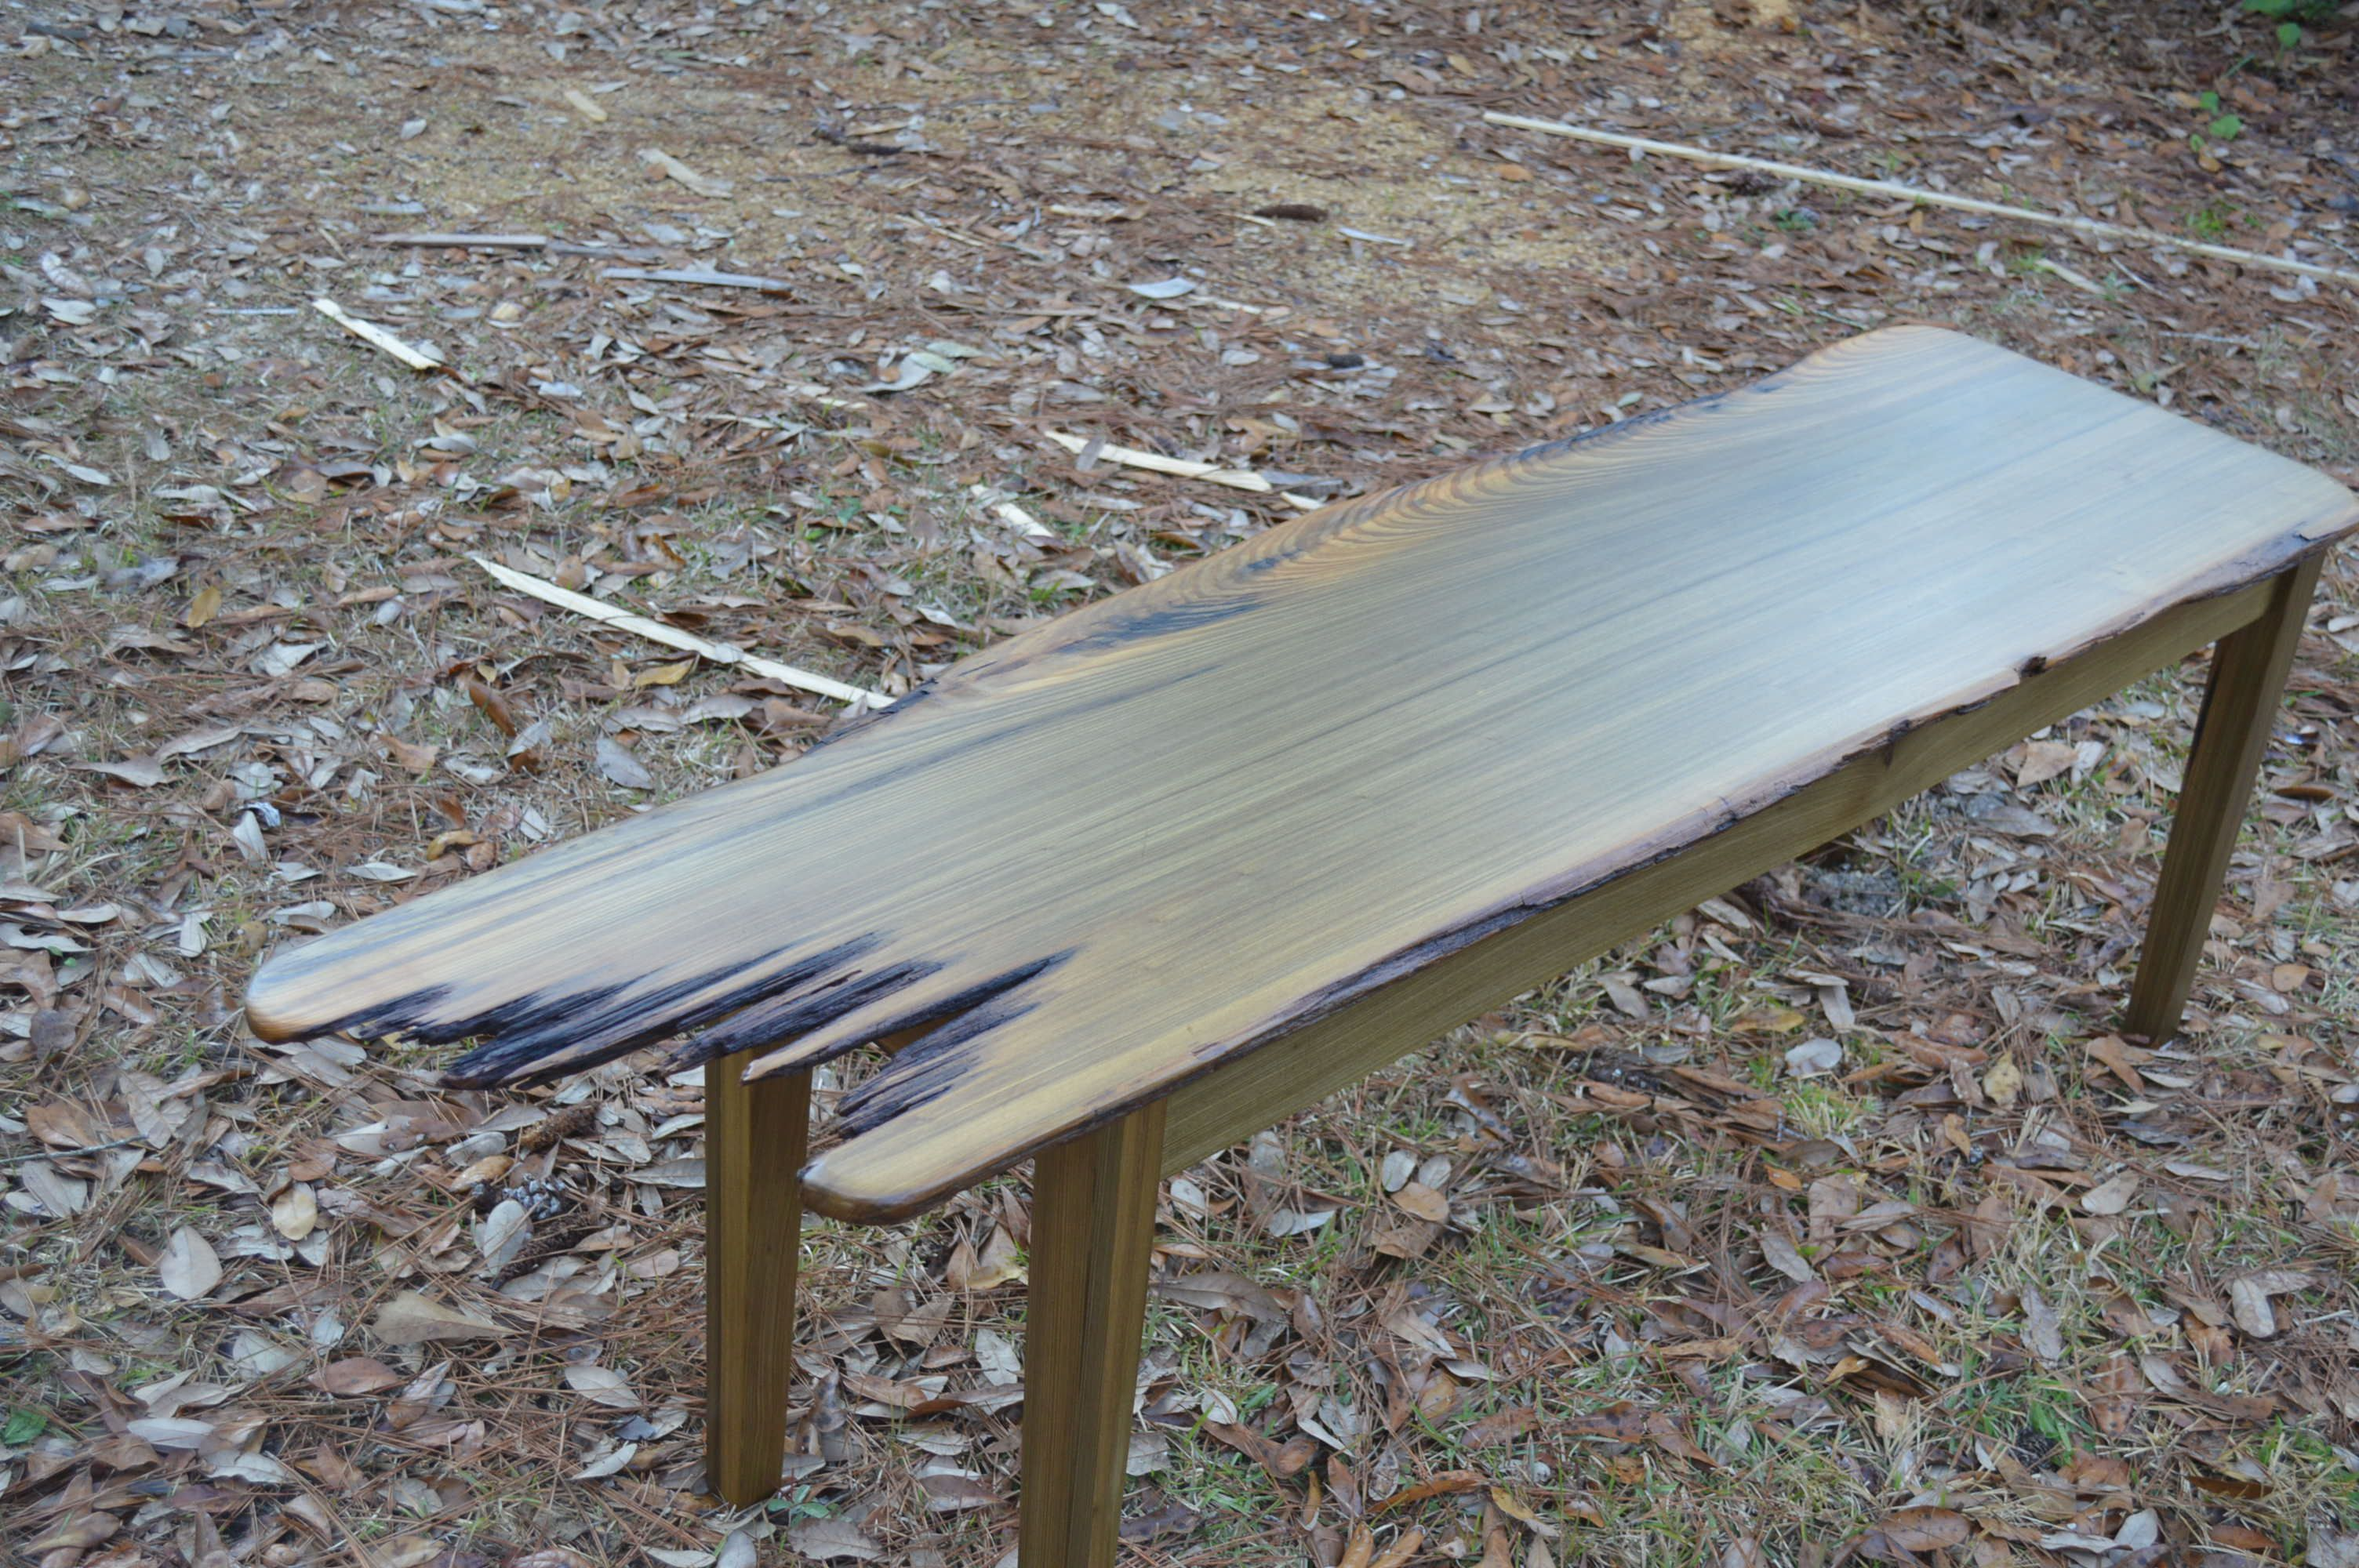 Sinker Cypress Coffee Table Call Don Hostetler 985 237 0694 If You Want One Mahogany Furniture Fine Furniture Old Wood